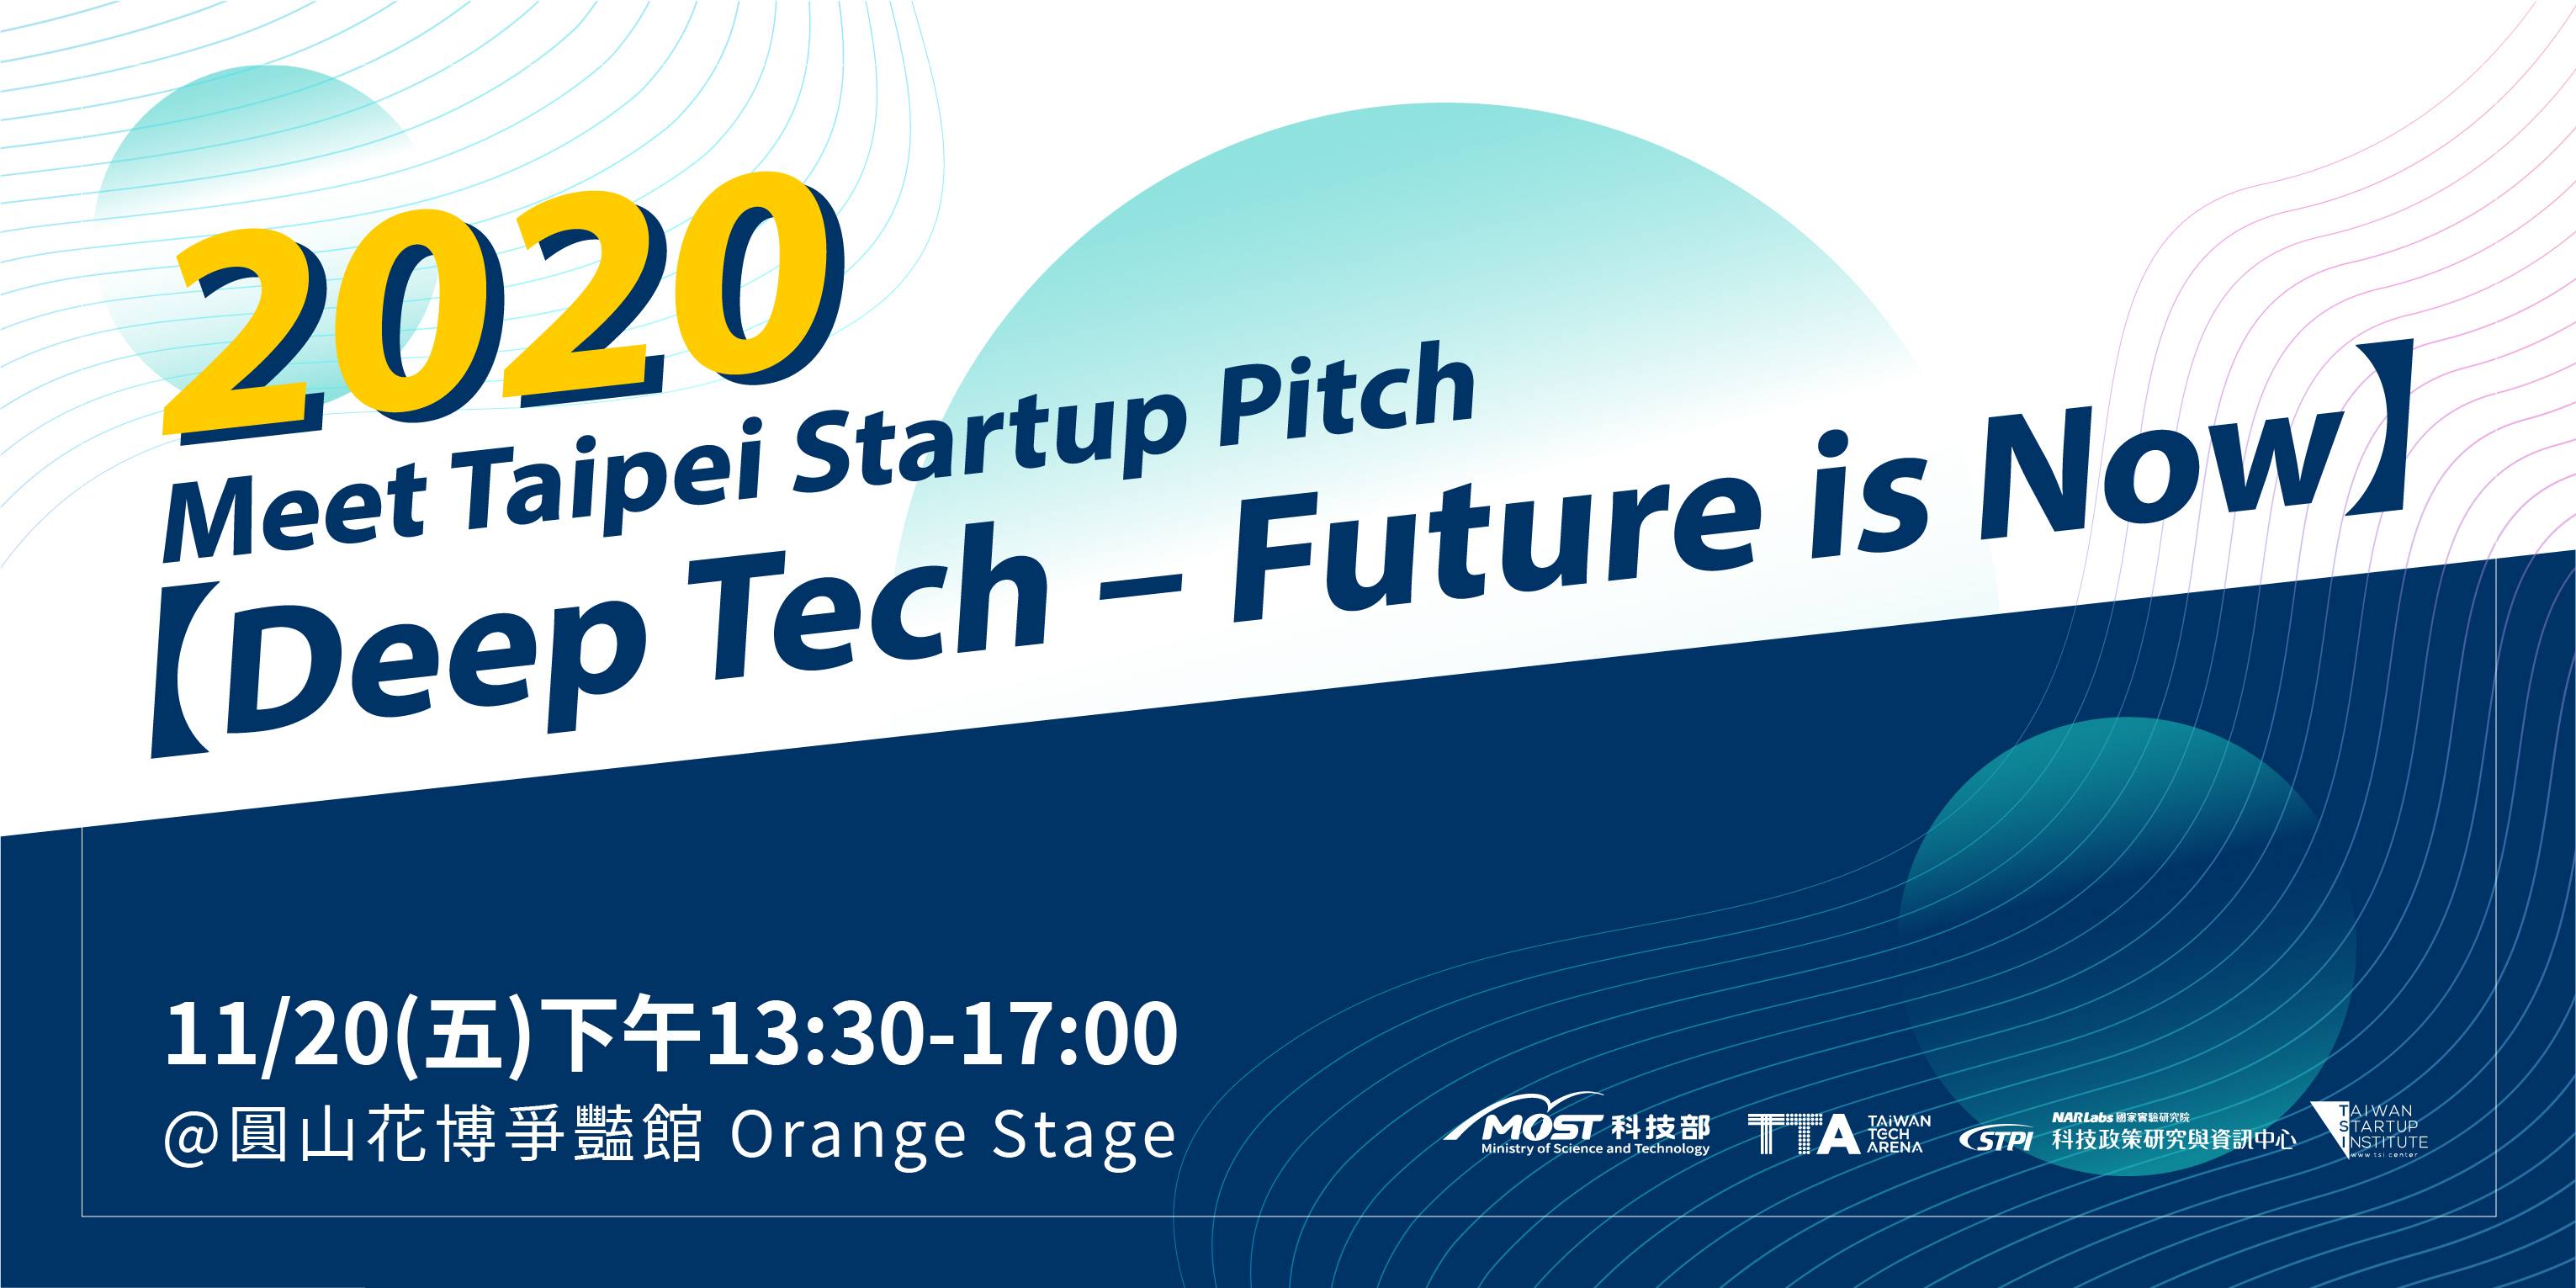 Deep Tech – Future is Now Startup Pitch